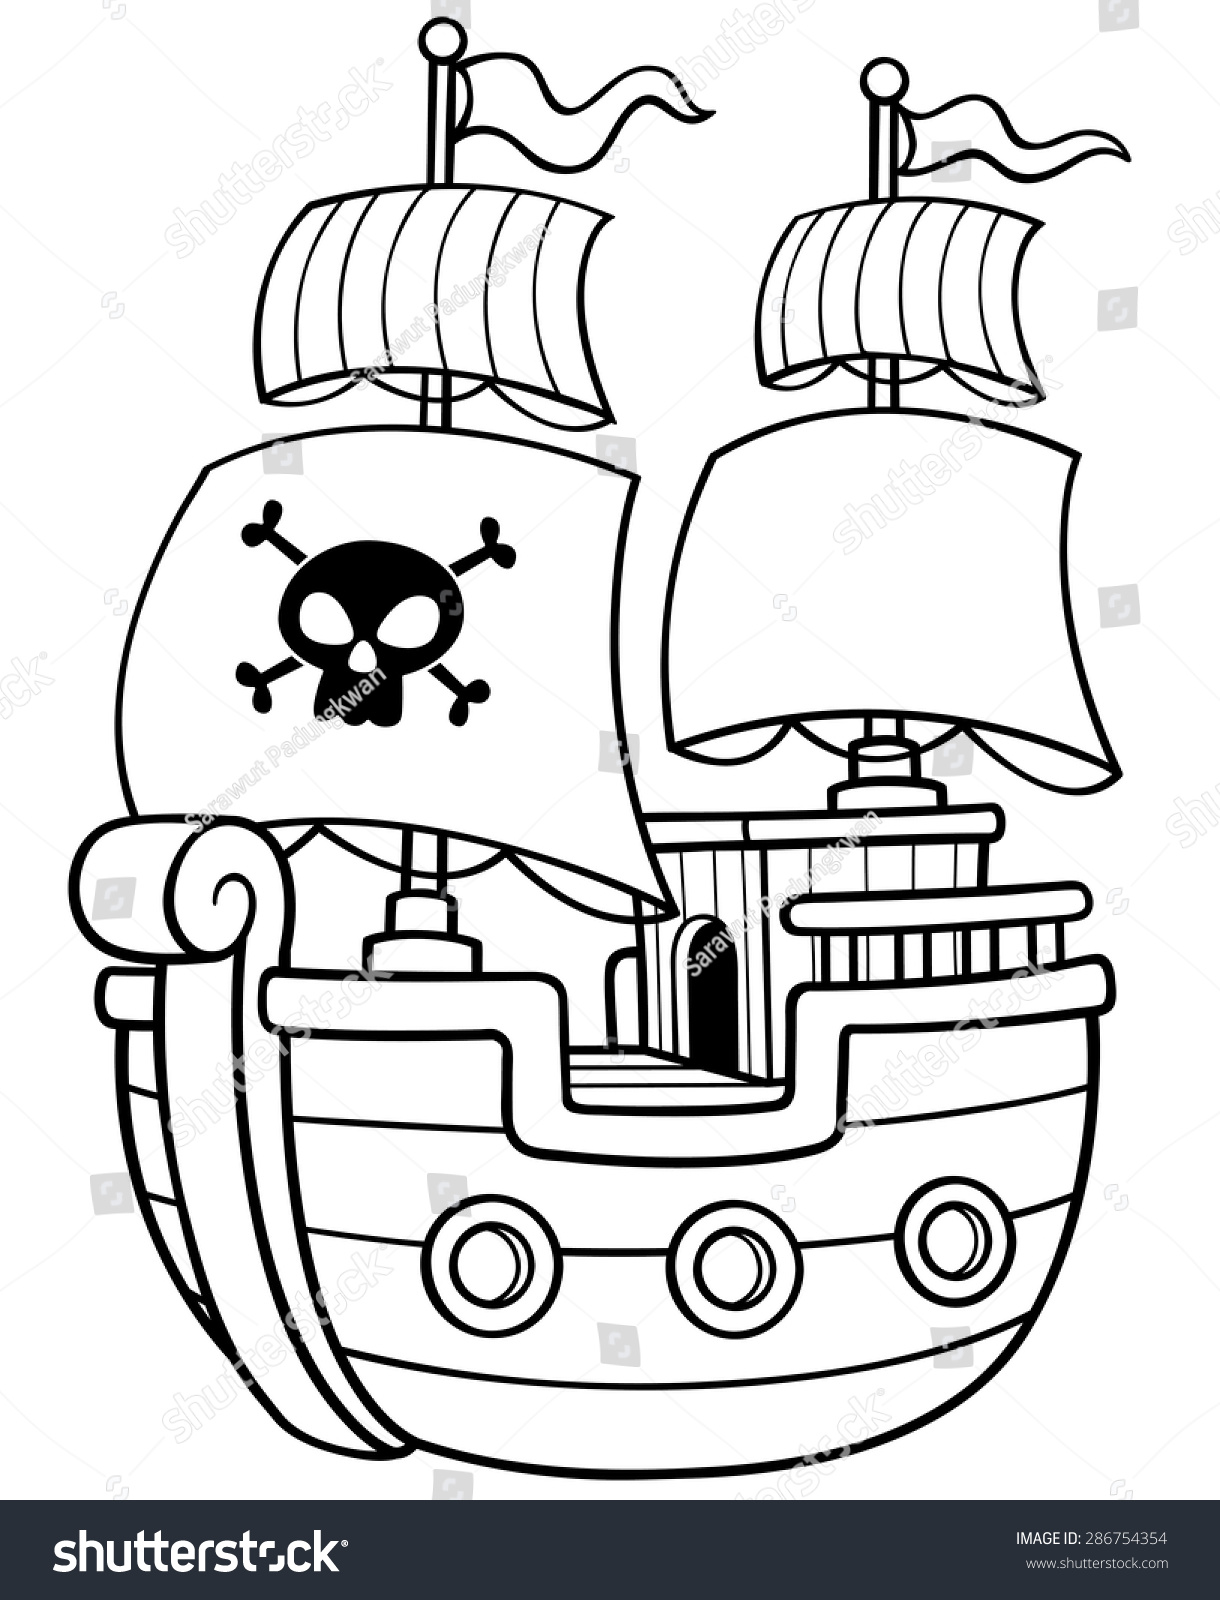 Vector Illustration Pirate Ship Coloring Book Stock Vector ...